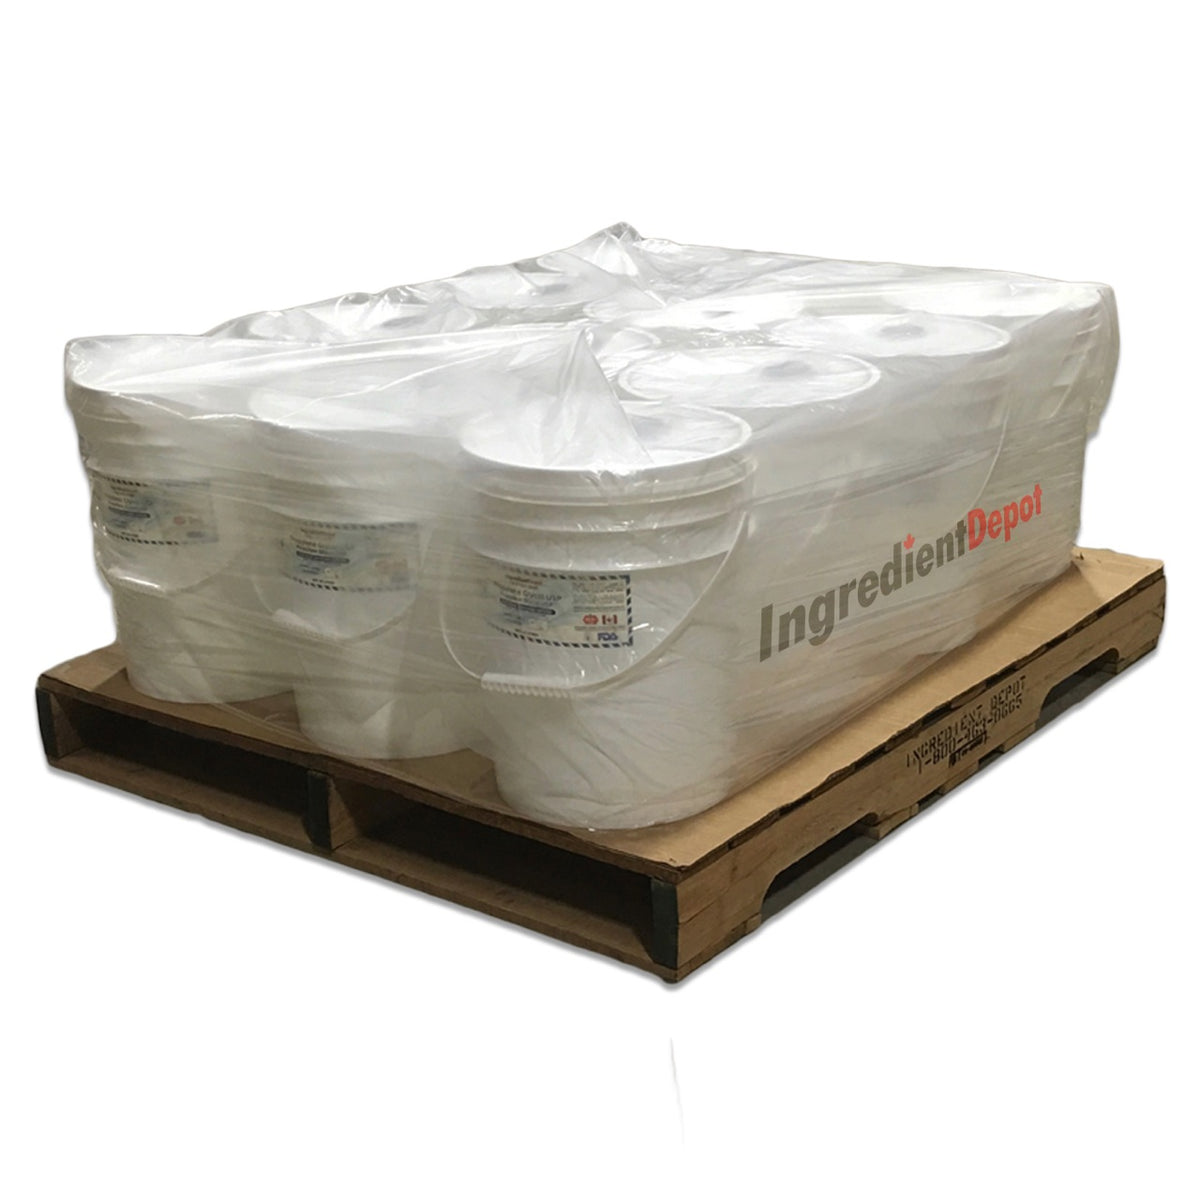 Propylene Glycol 99.9% Industrial or Technical Grade | 12 x 20 Litres